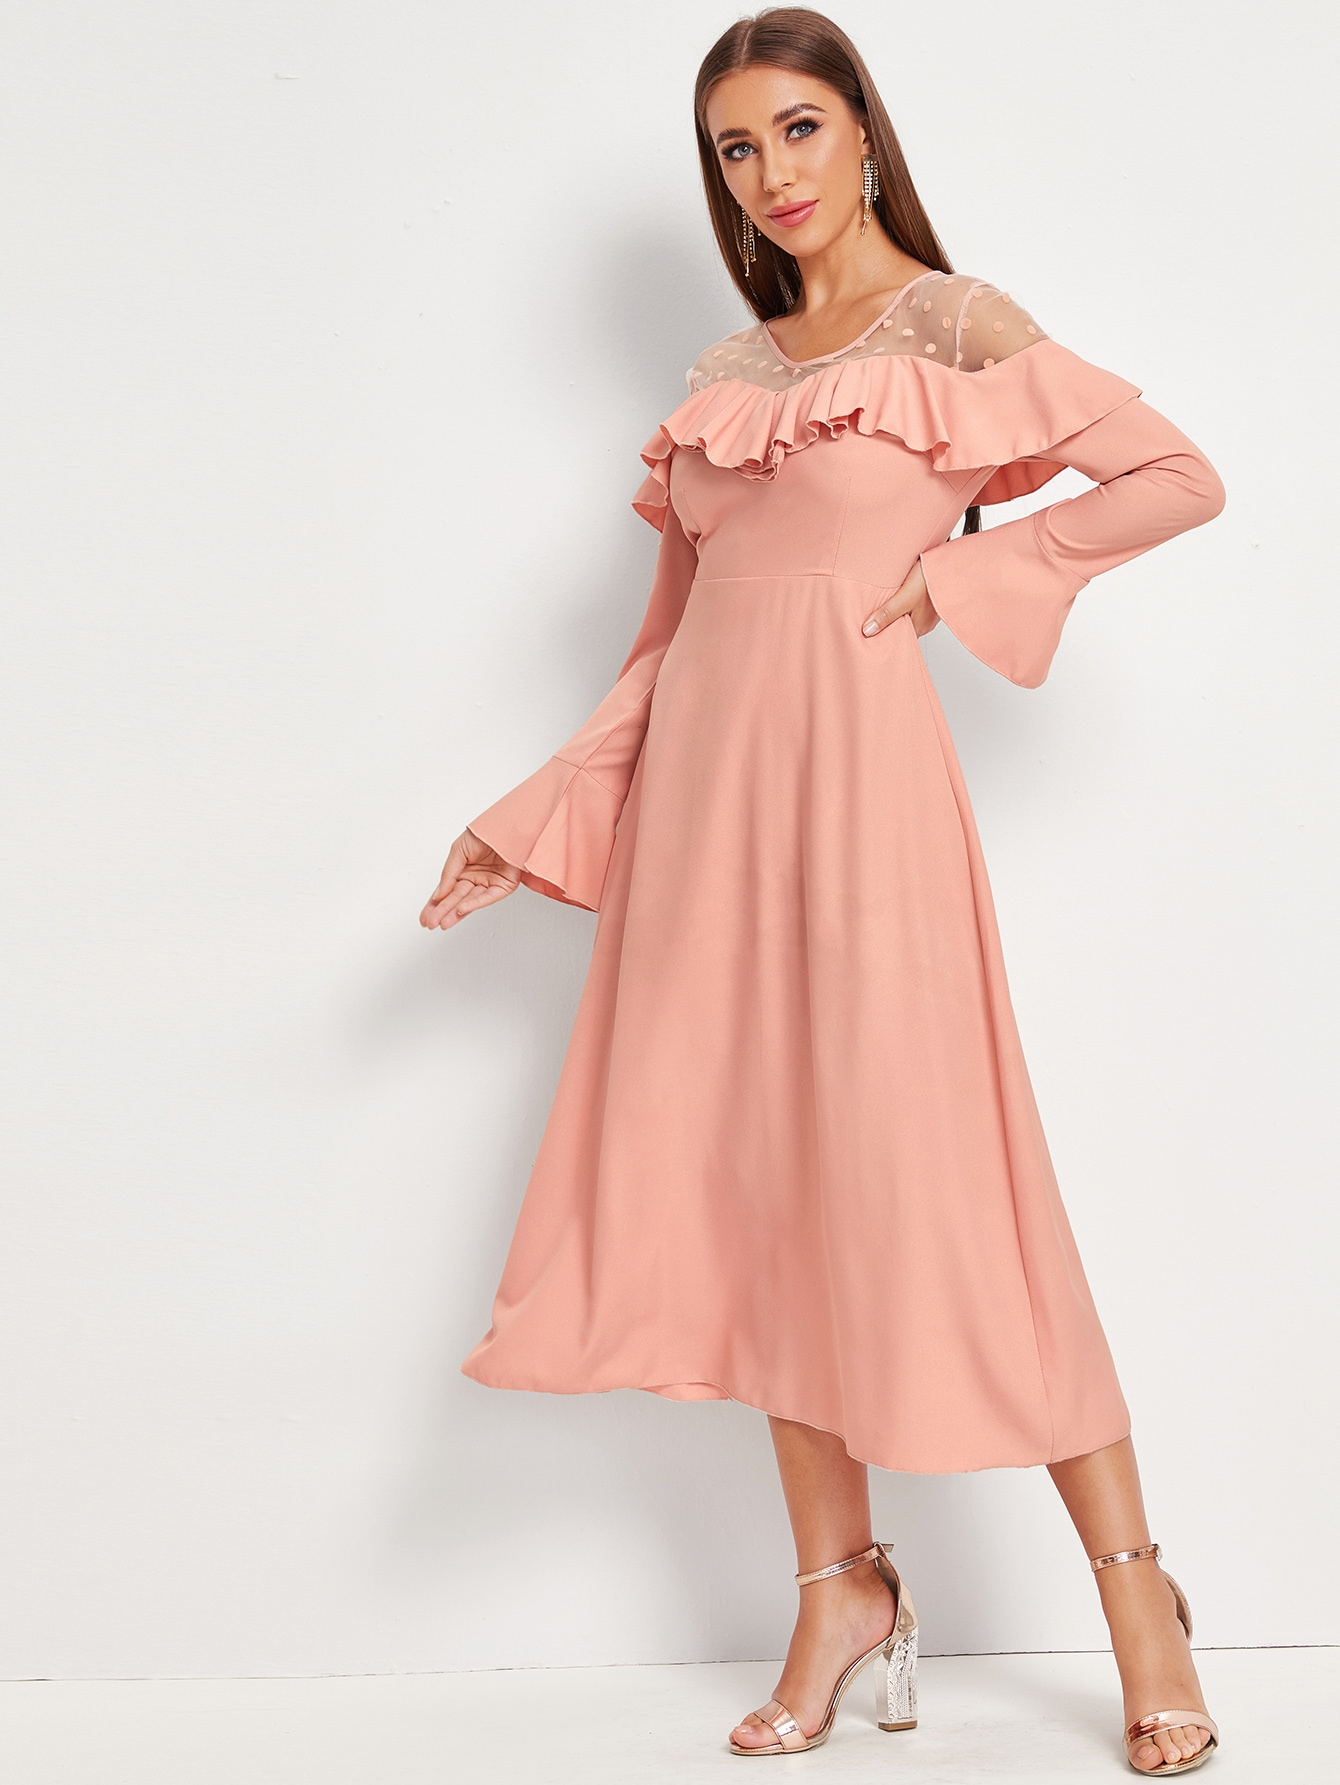 Contrast Dobby Mesh Ruffle Trim A-line Dress